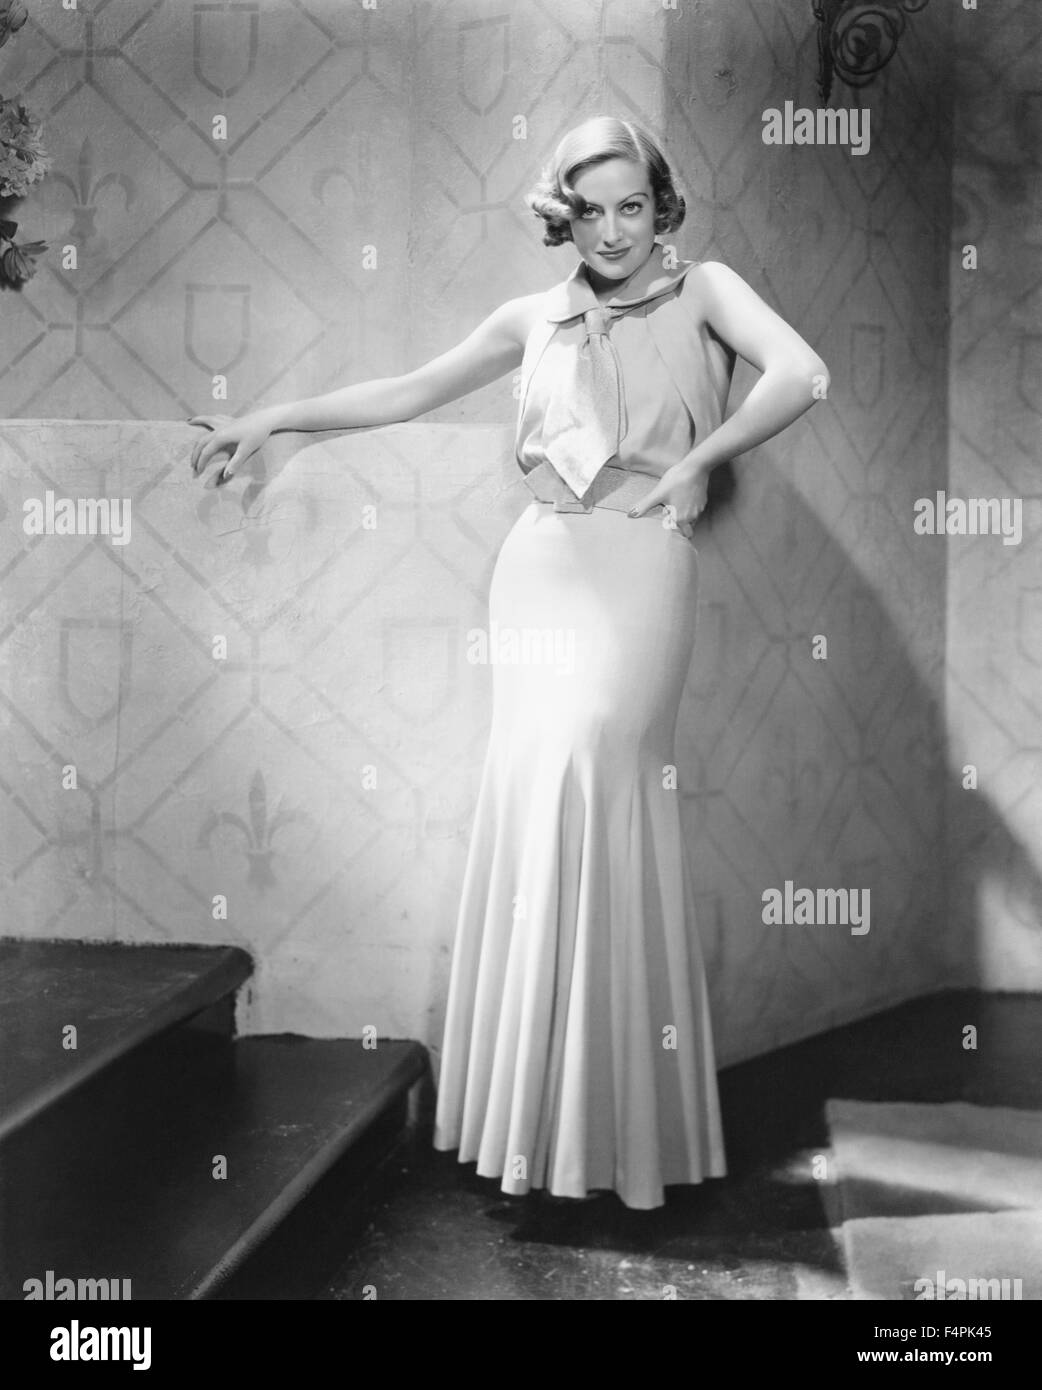 Joan Crawford in the 30's - Stock Image